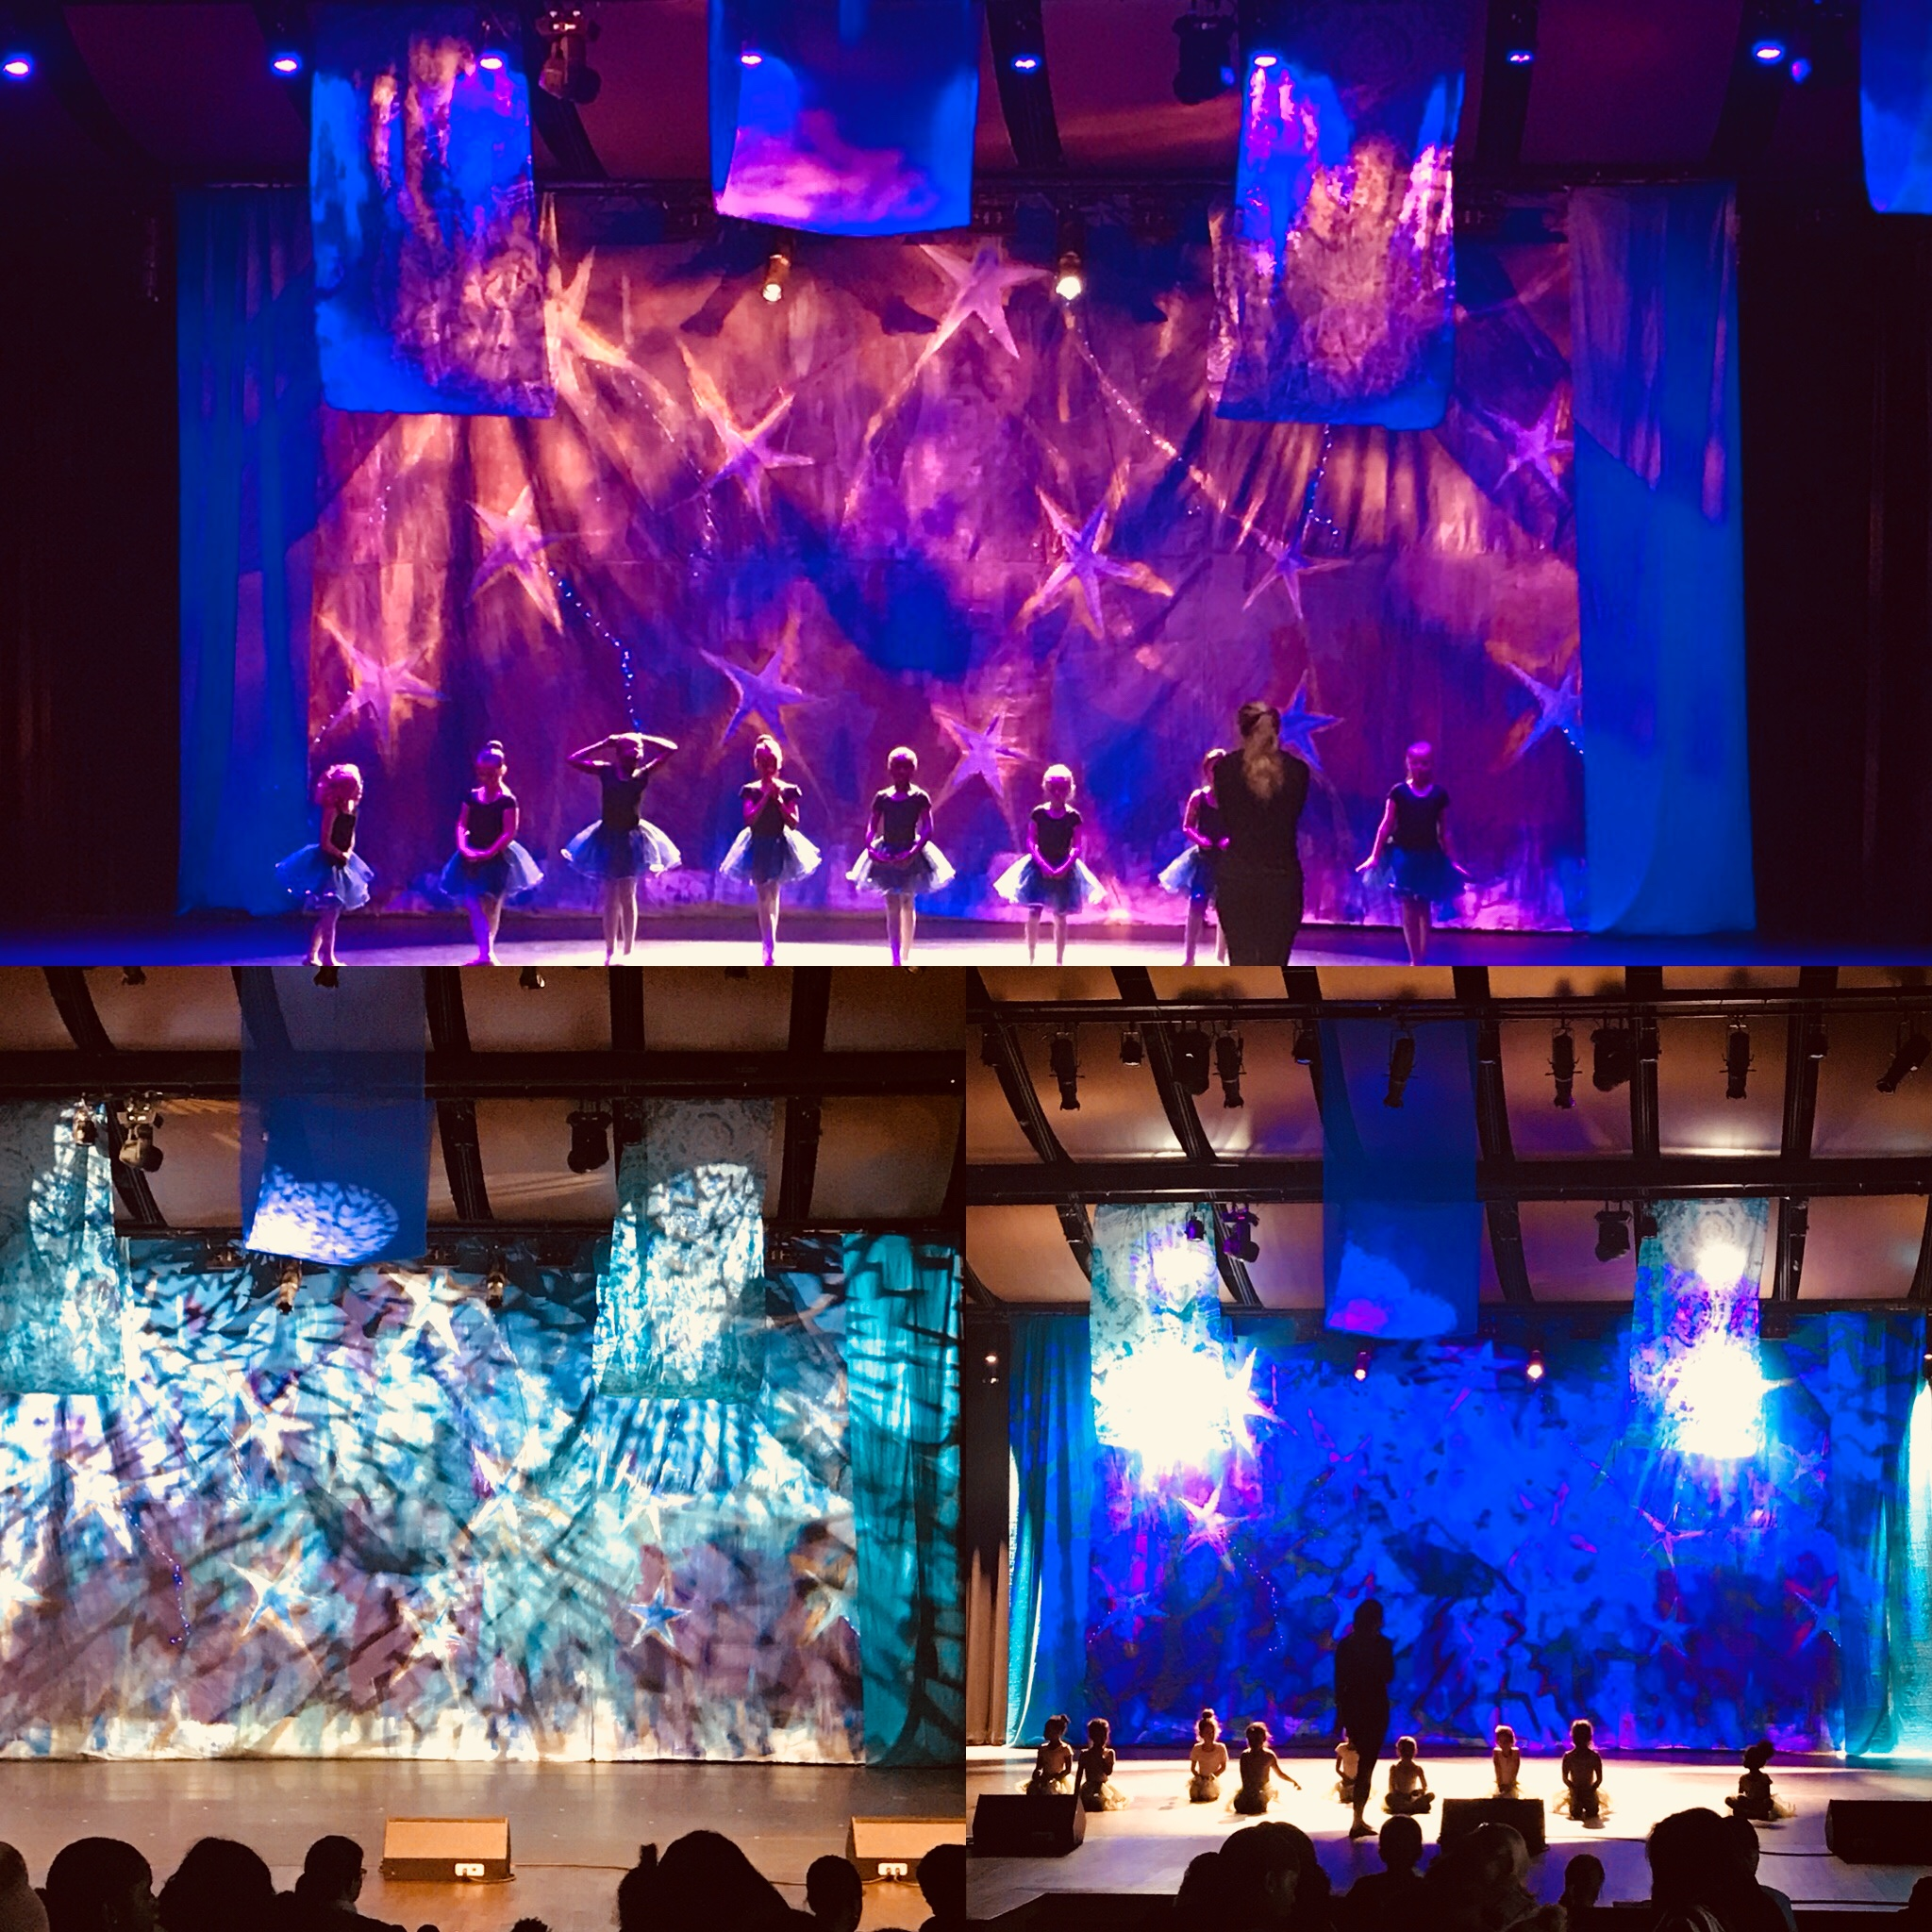 Set design for the Greater Atlanta Christian School Nativity Ballet